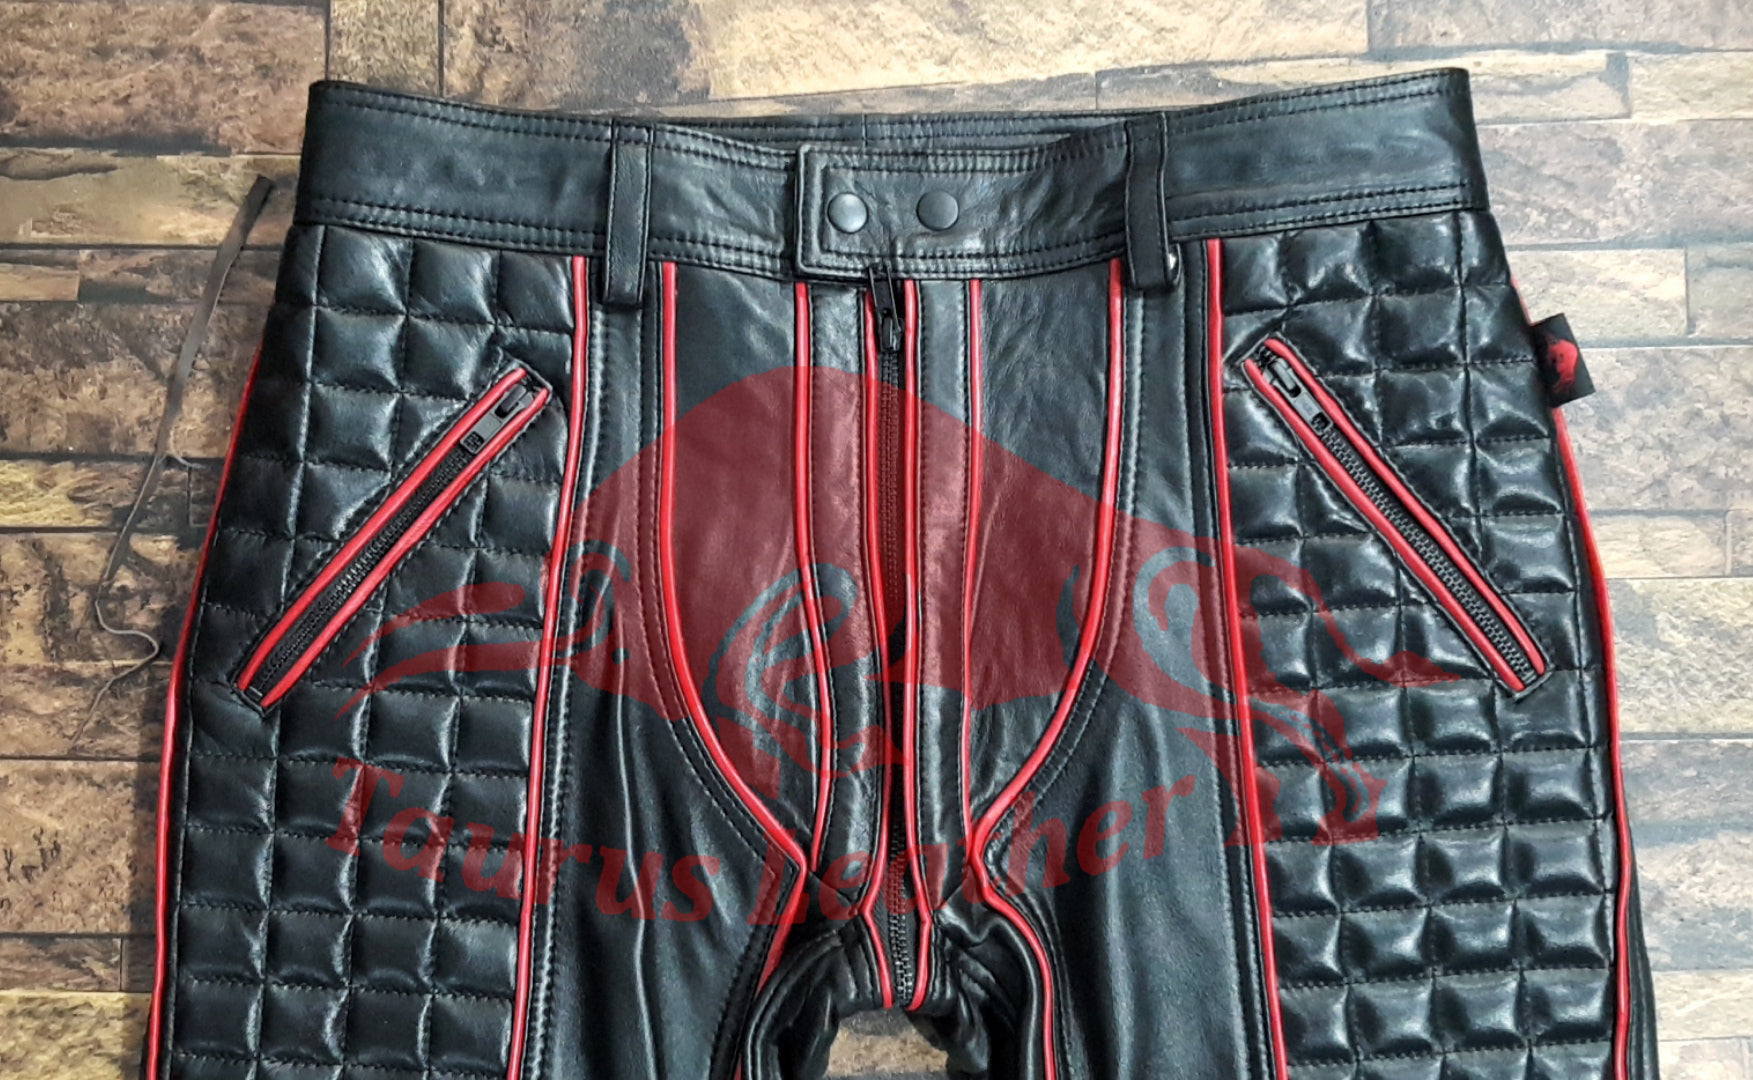 TAURUS LEATHER Sheep Leather Quilted Design Pant With Red Trimming